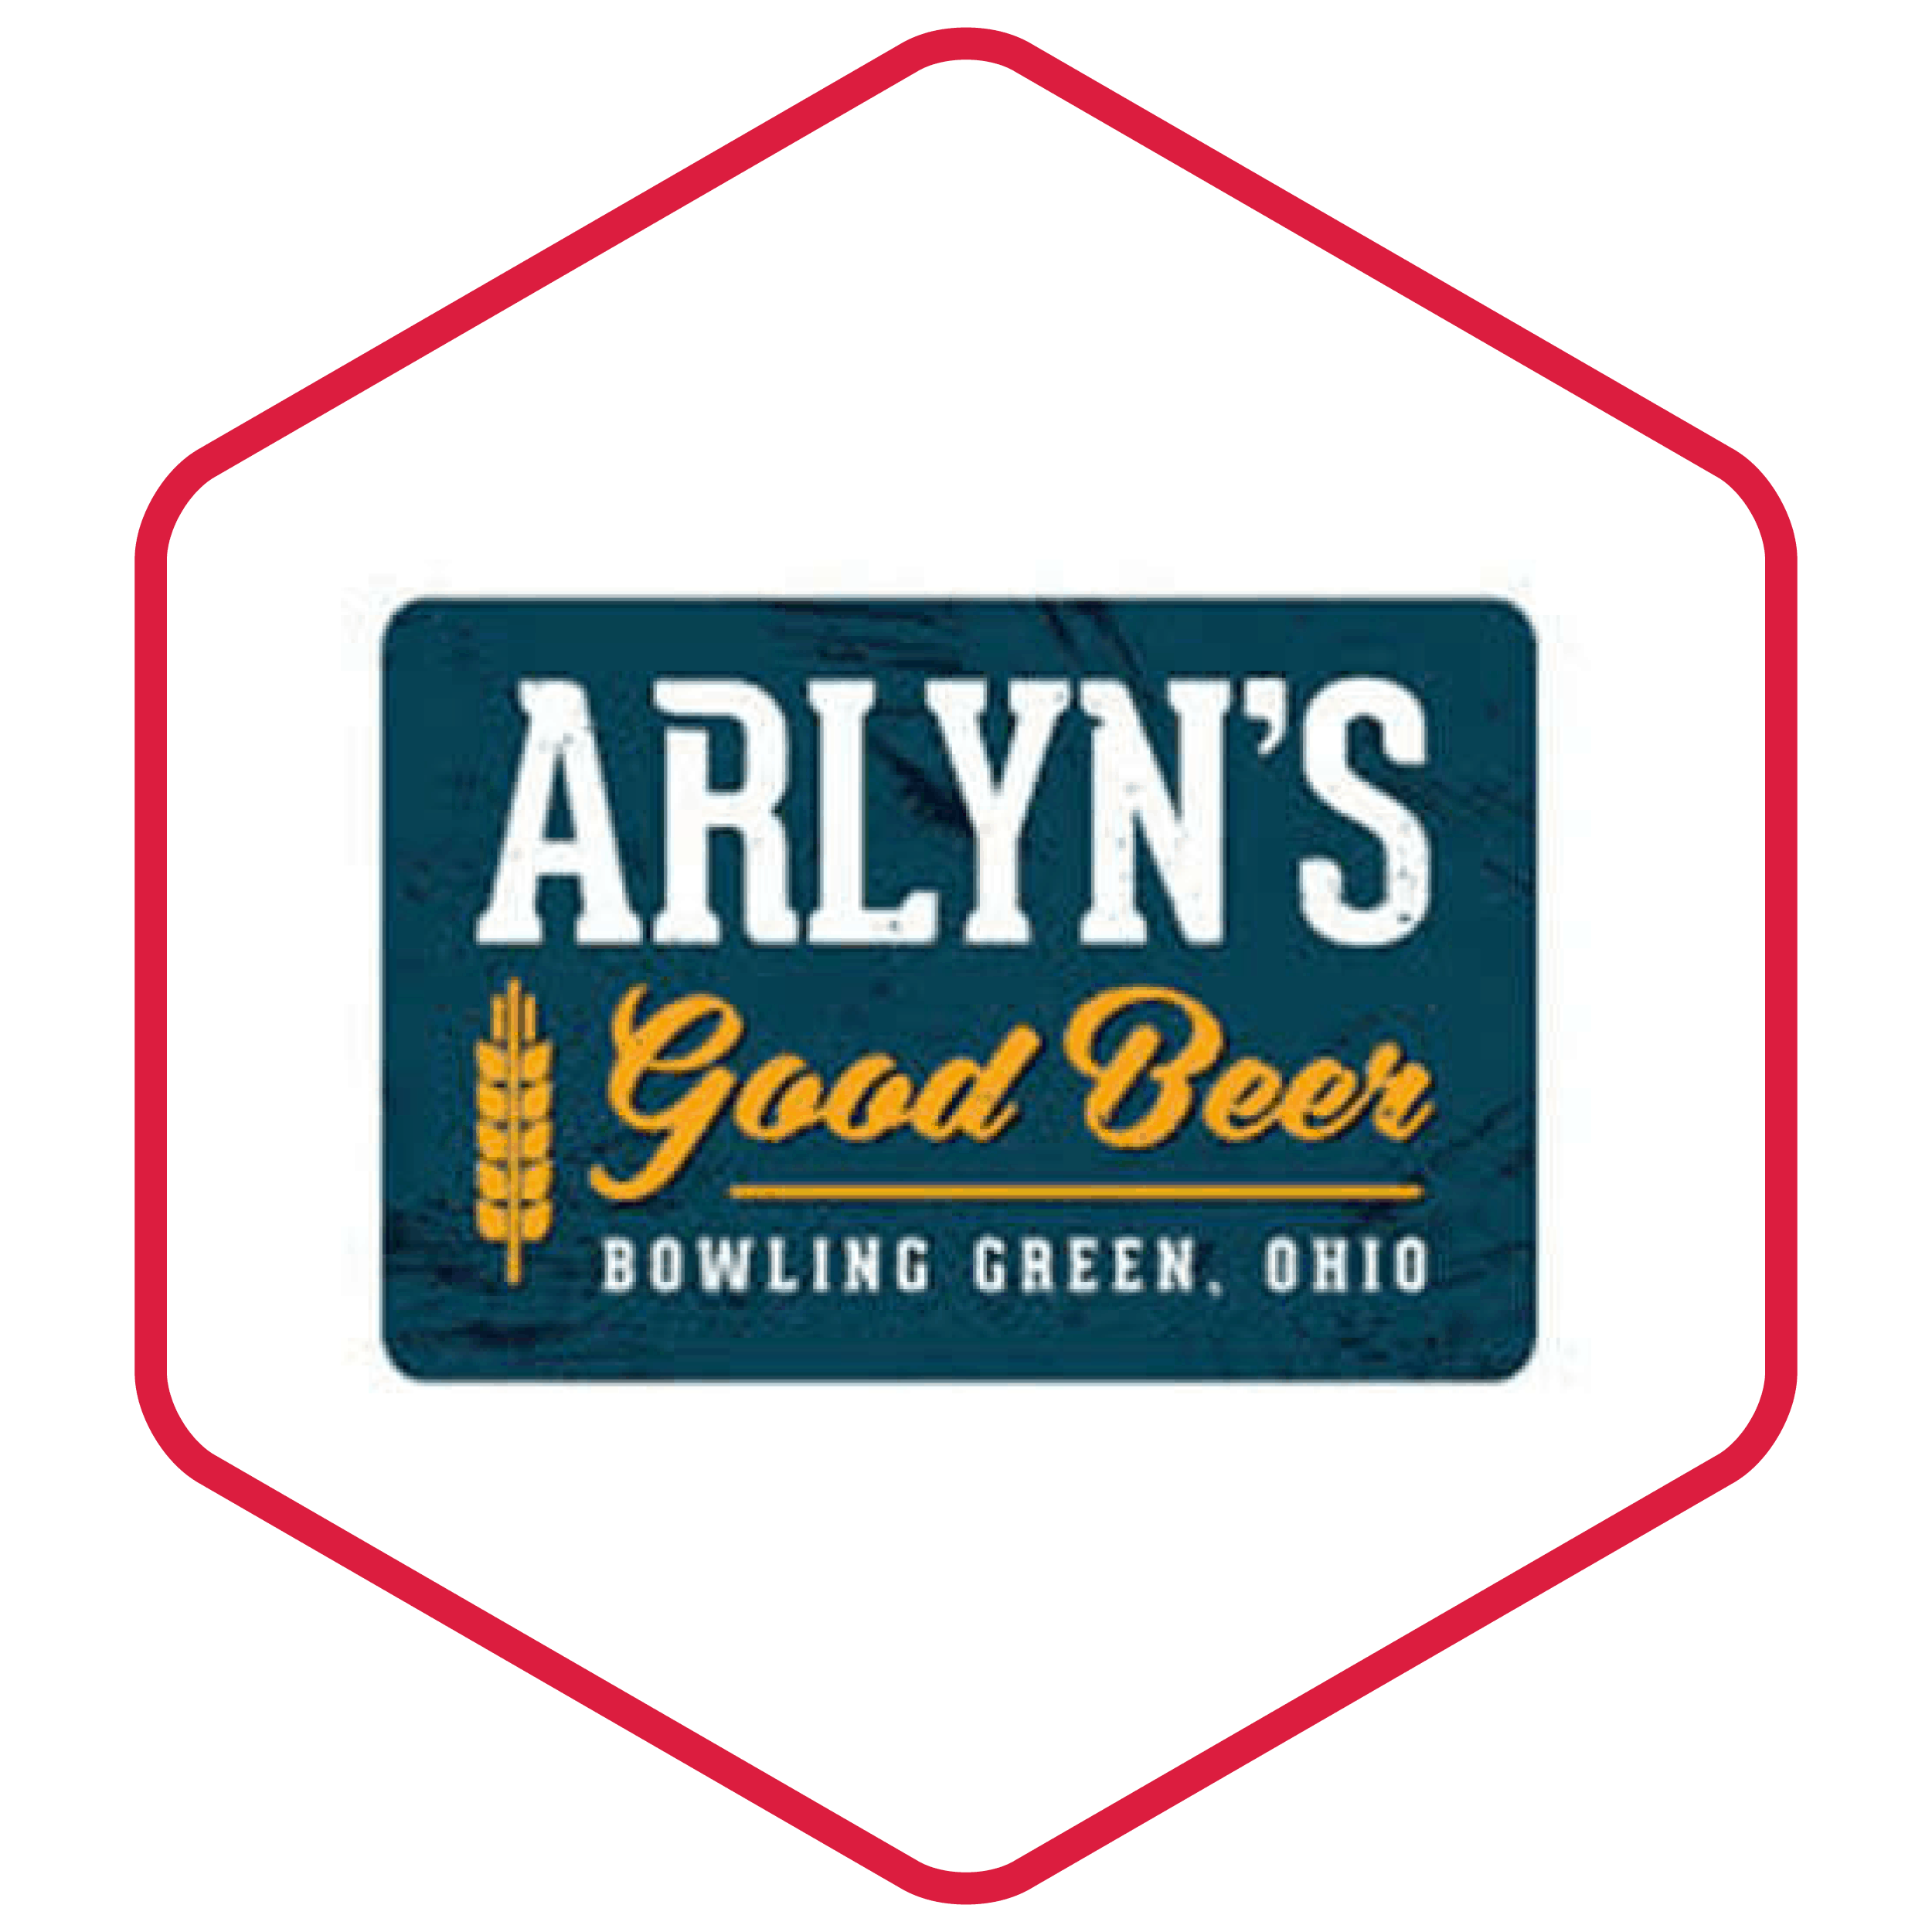 image of Arlyn's logo with in a hexagon with a red border